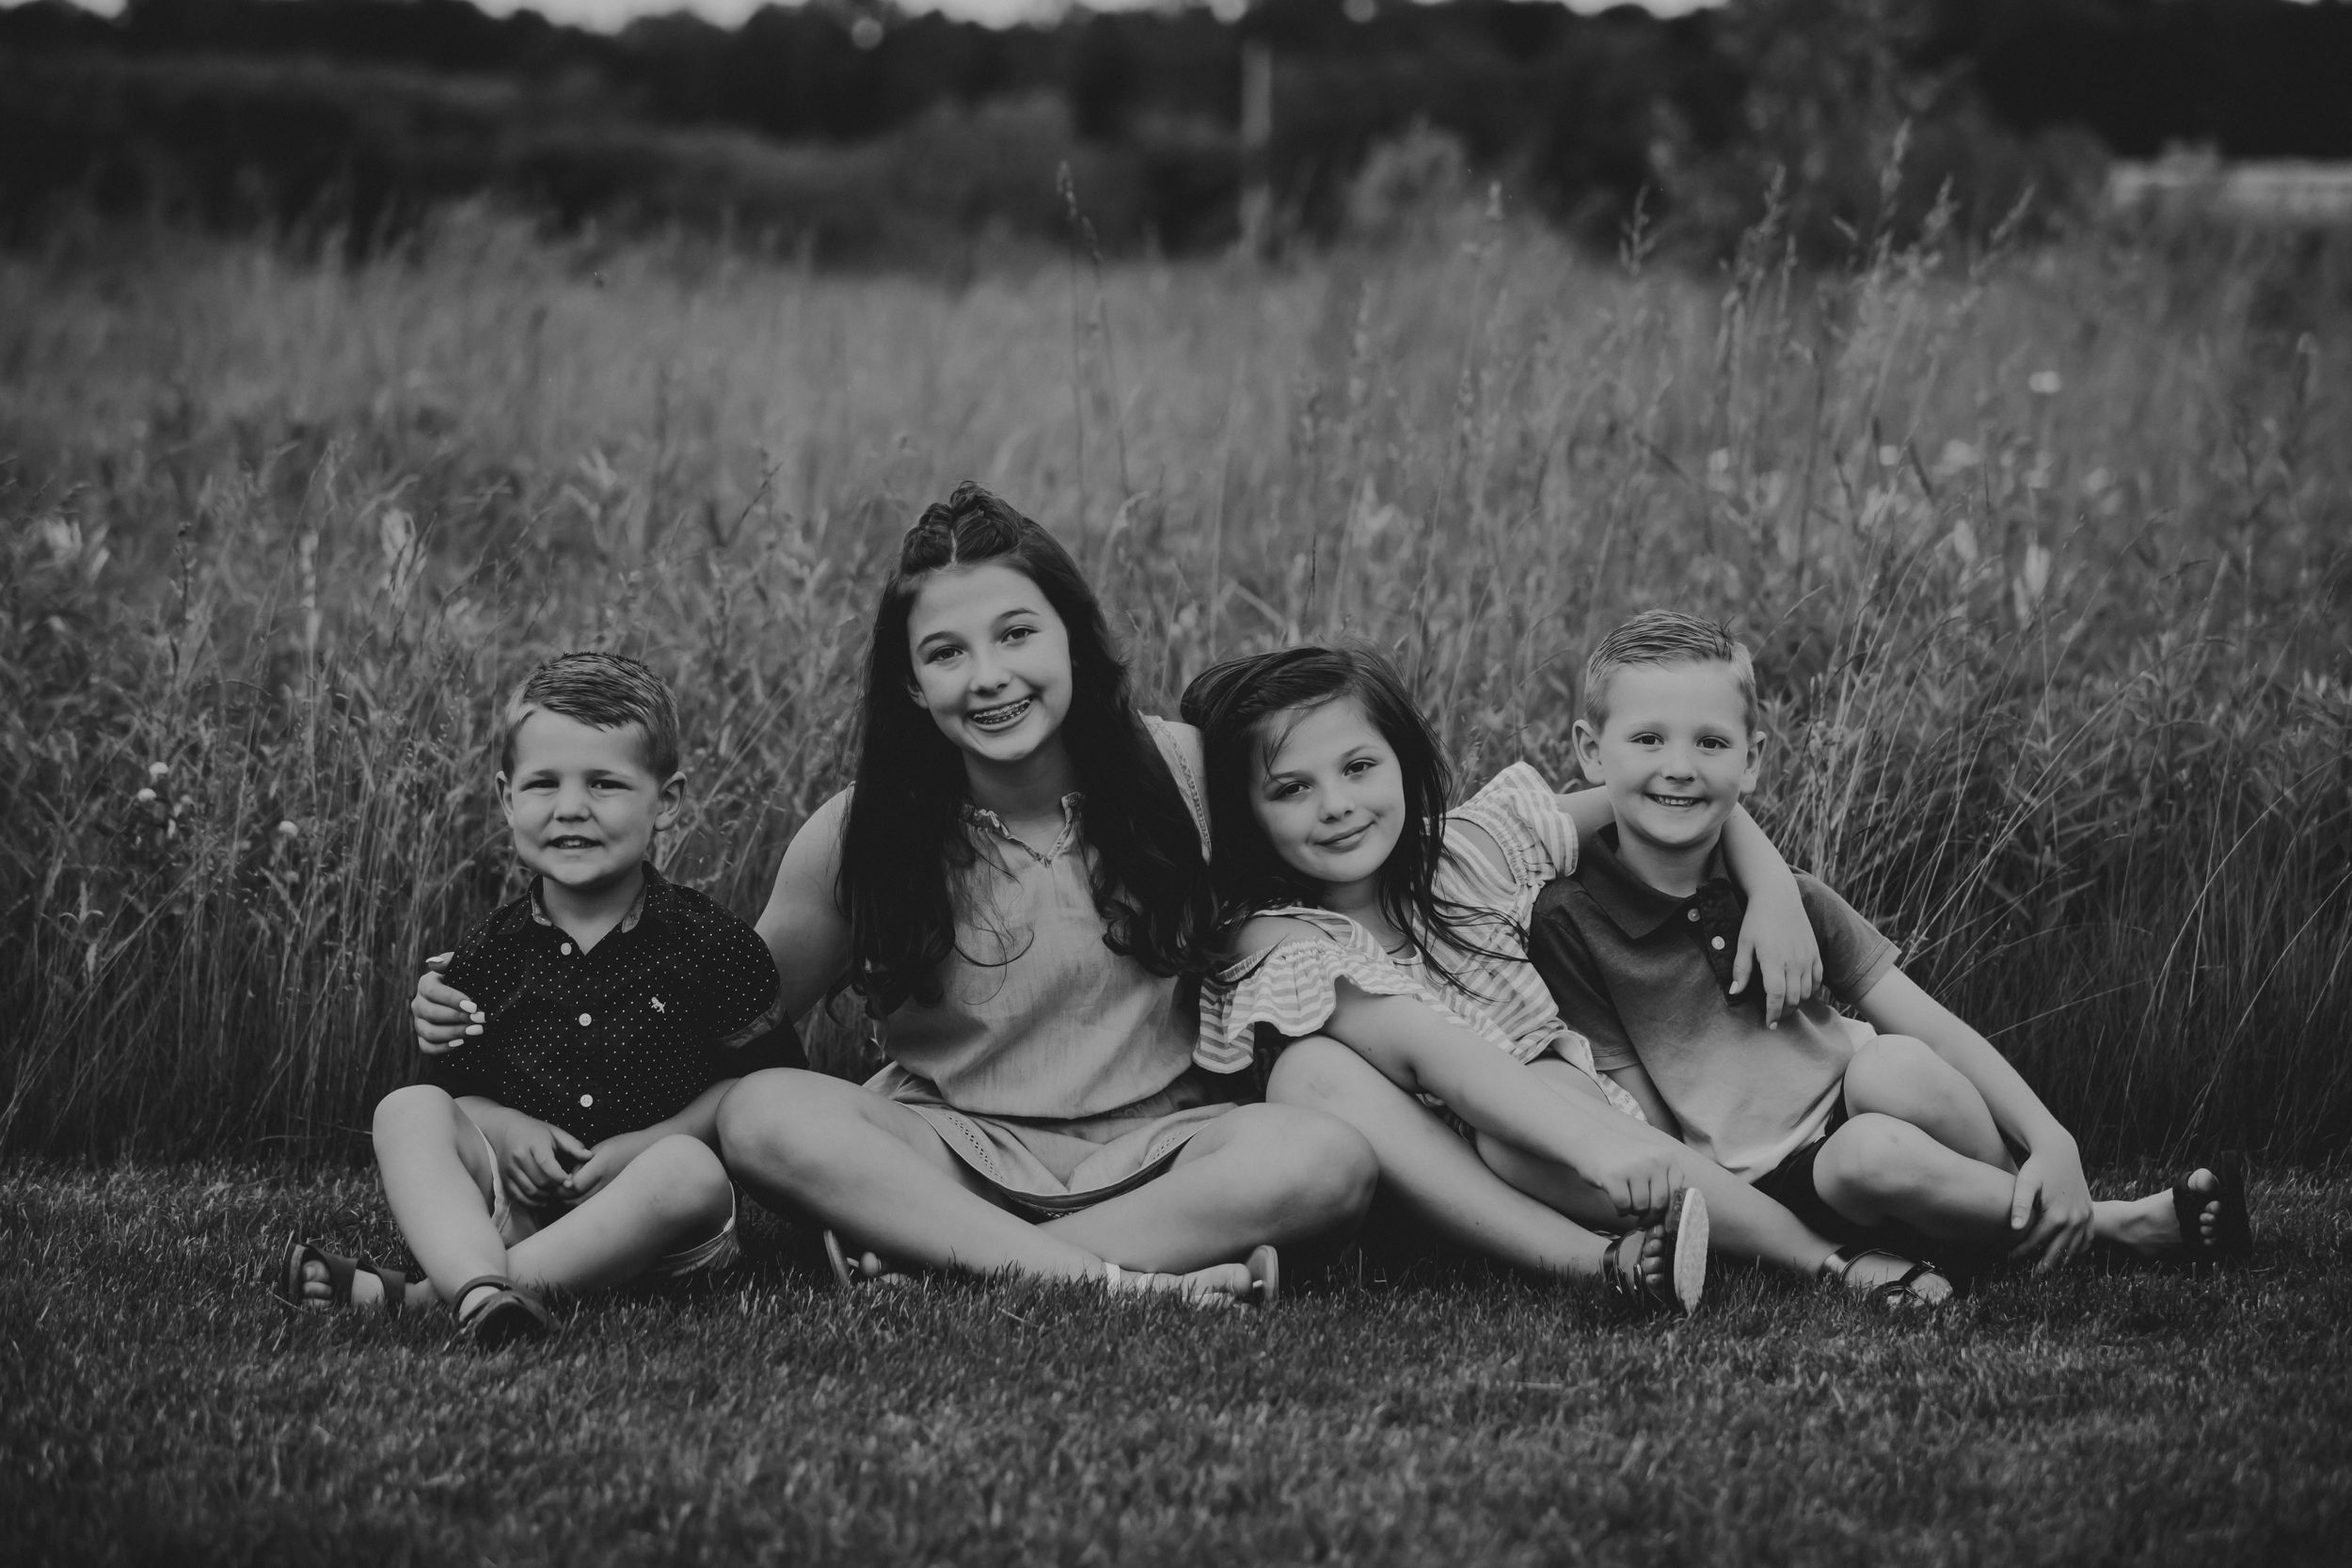 Black and white photo of four children sitting in front of a field smiling.